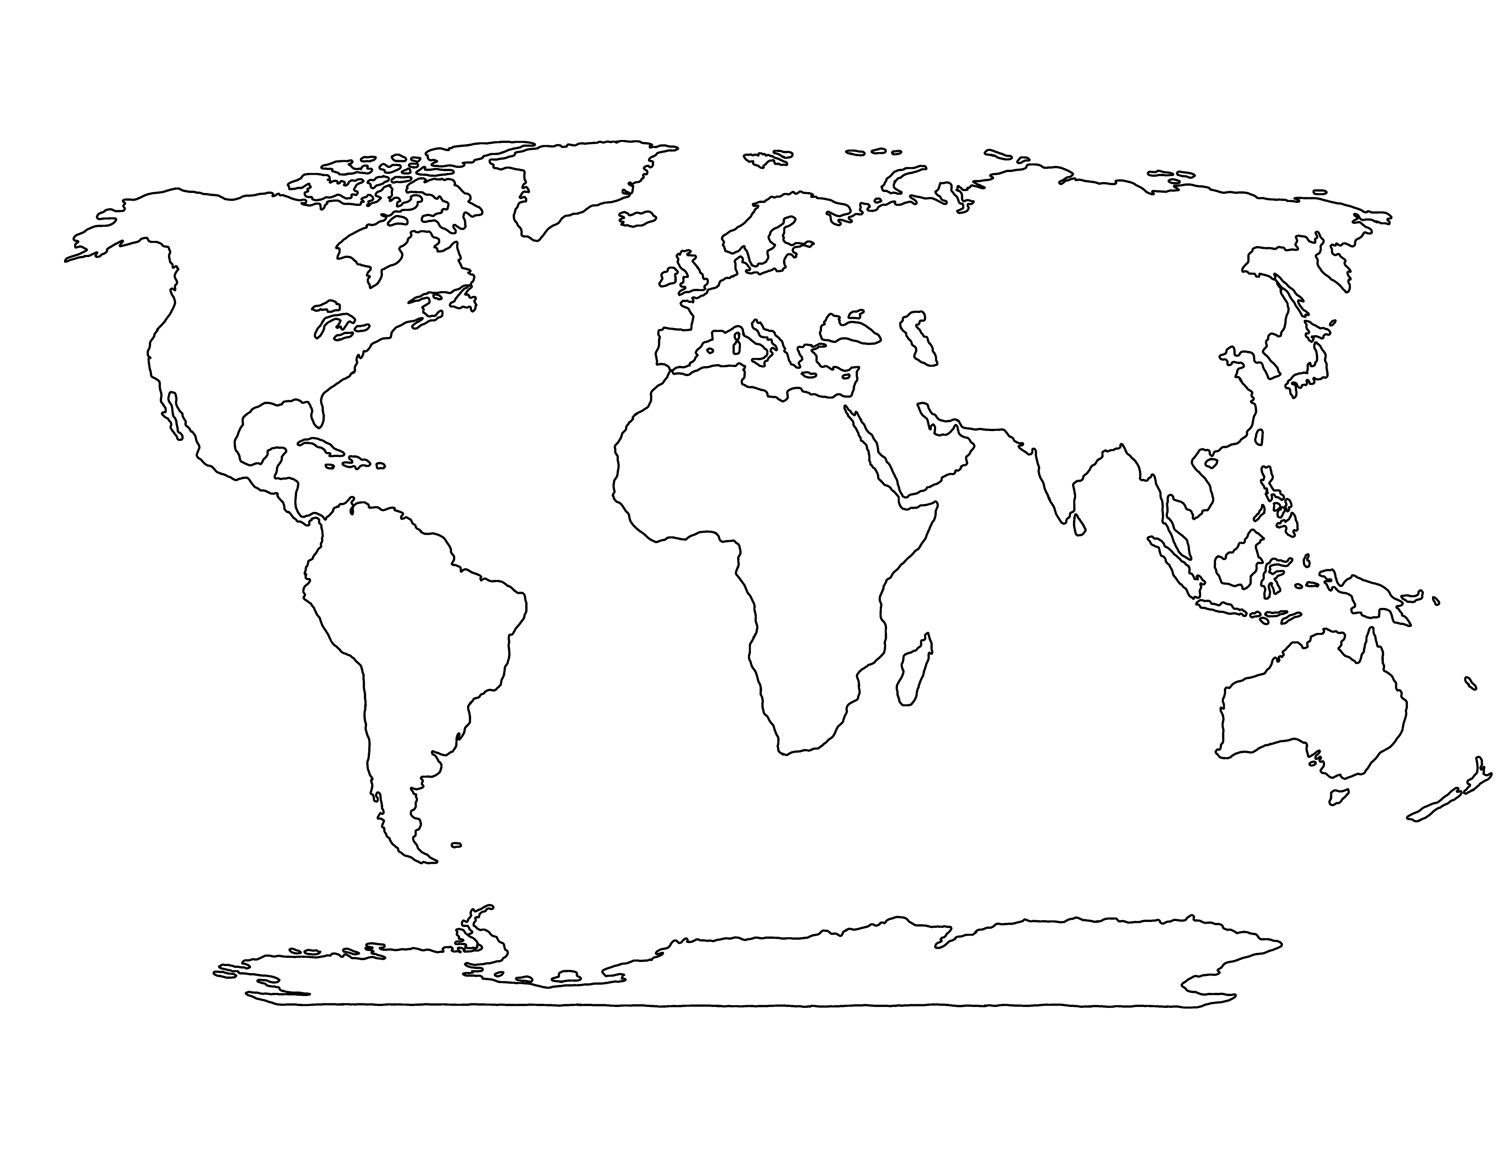 Printable Blank World Map Template For Students And Kids Art